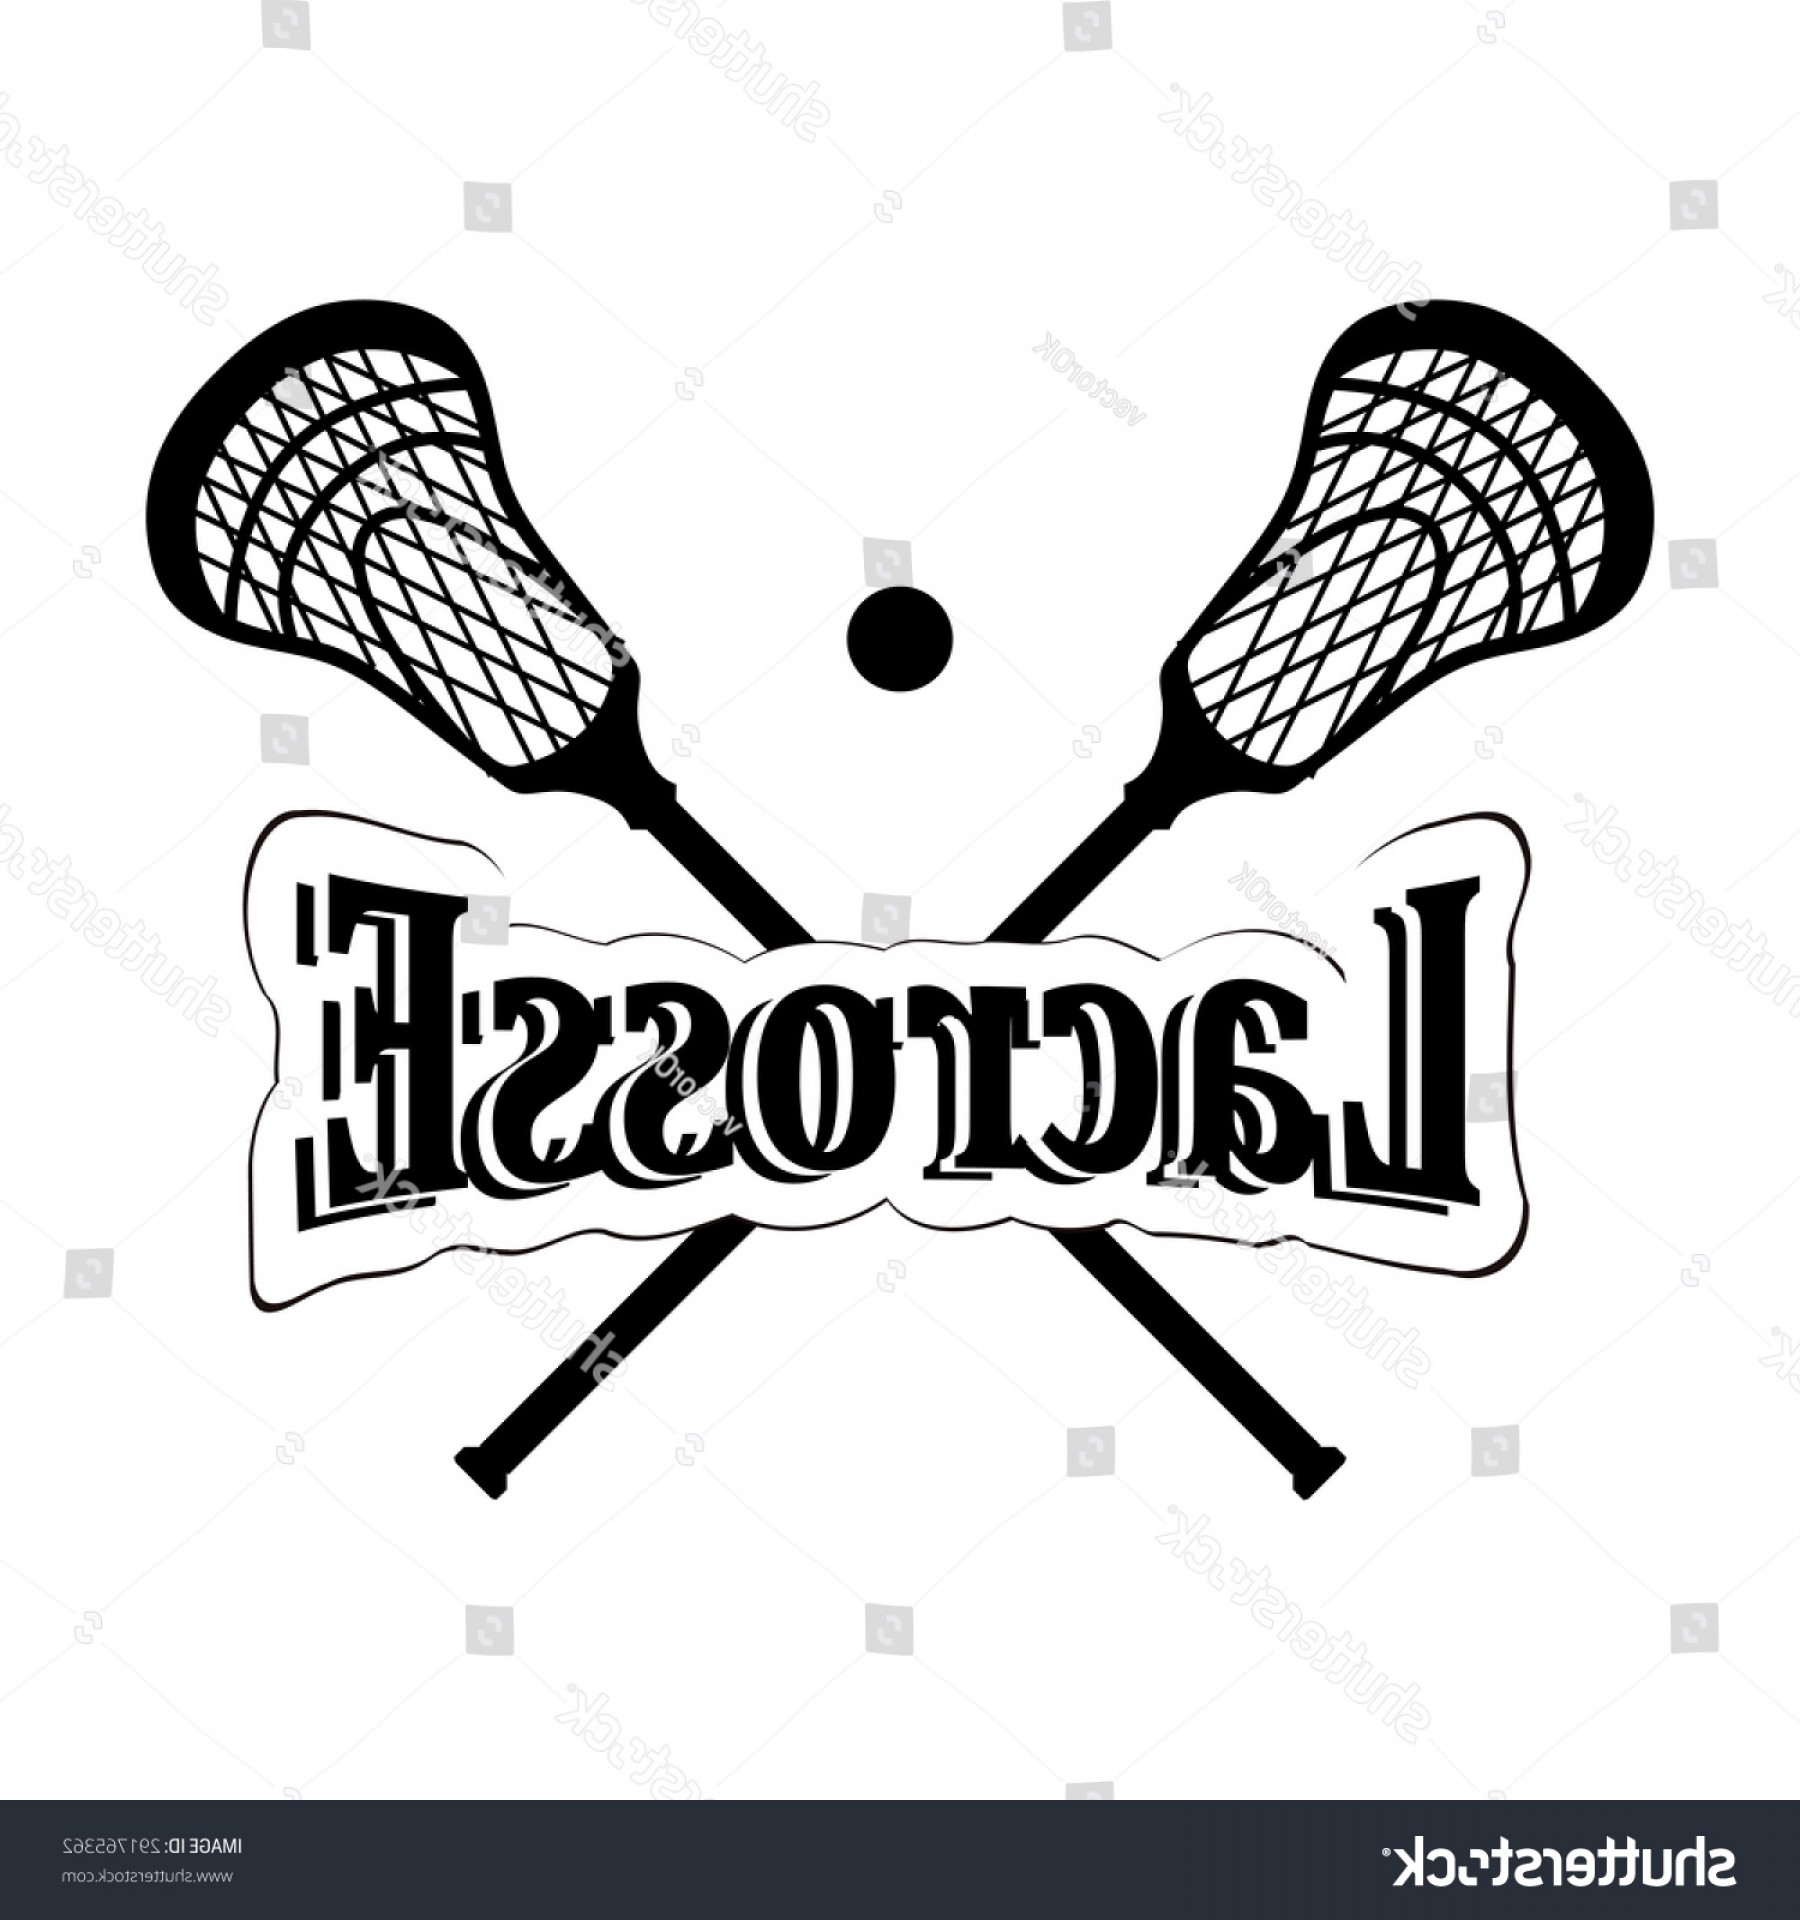 Lacrosse Stick Vector: Crossed Lacrosse Stick Vector Illustration